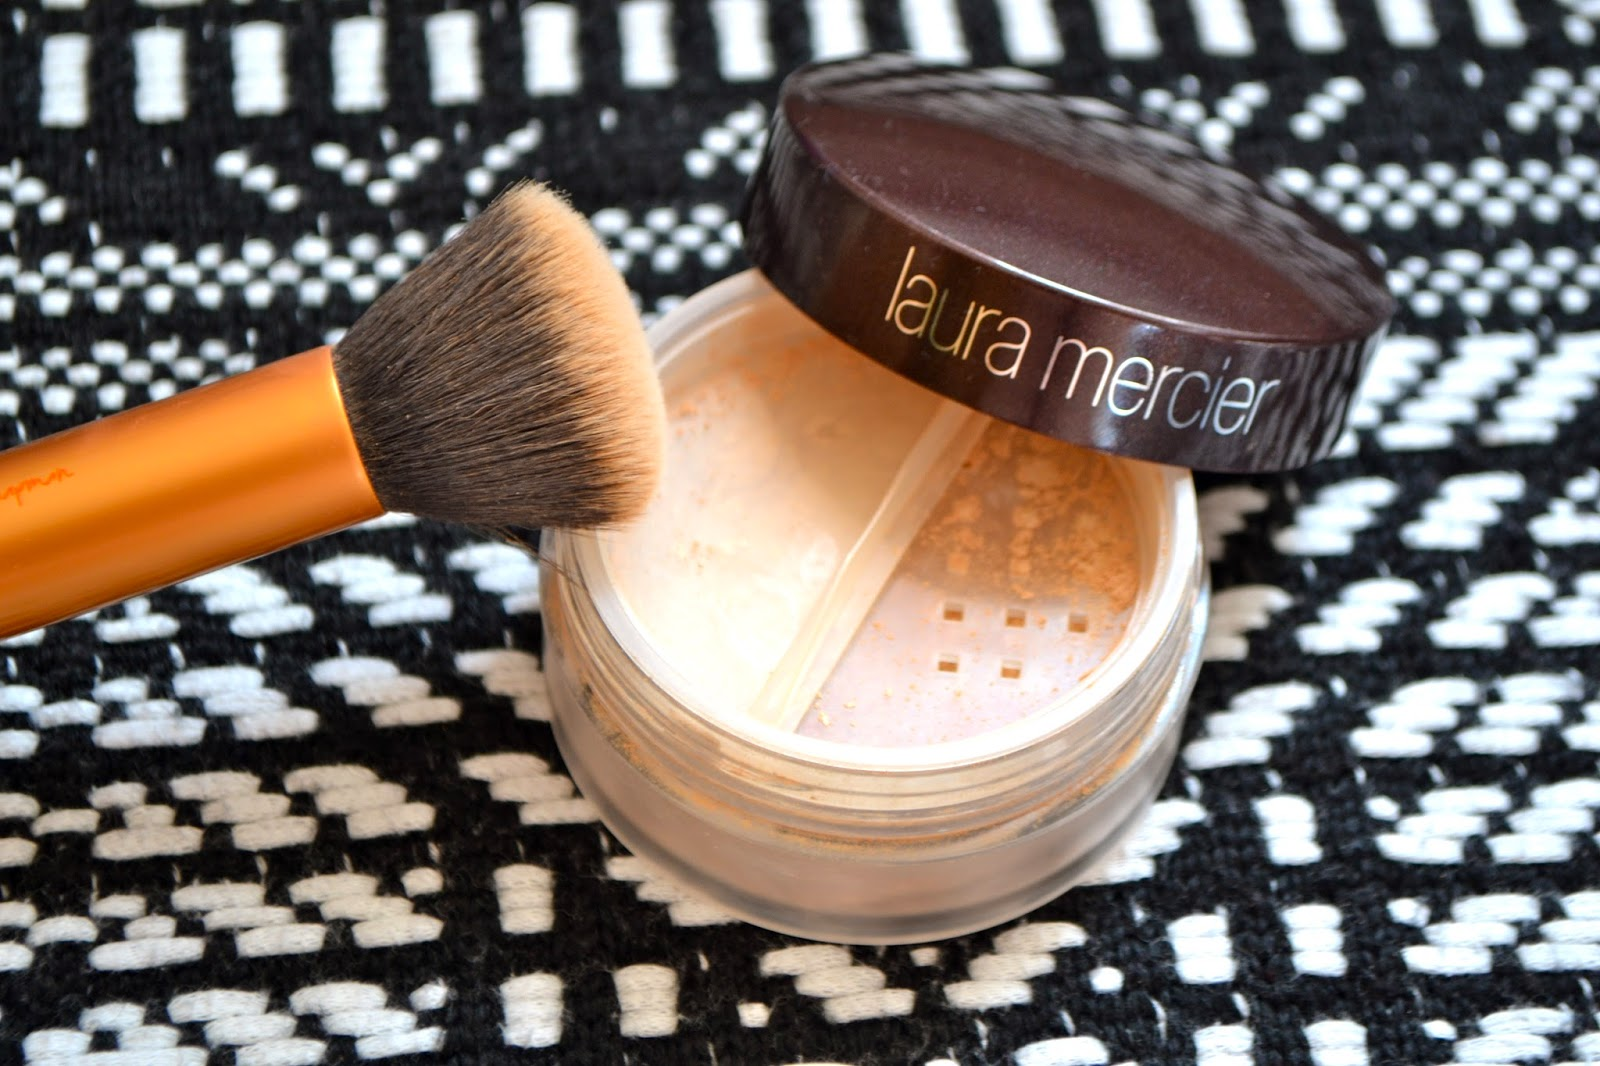 Laura Mercier Mineral Powder Foundation